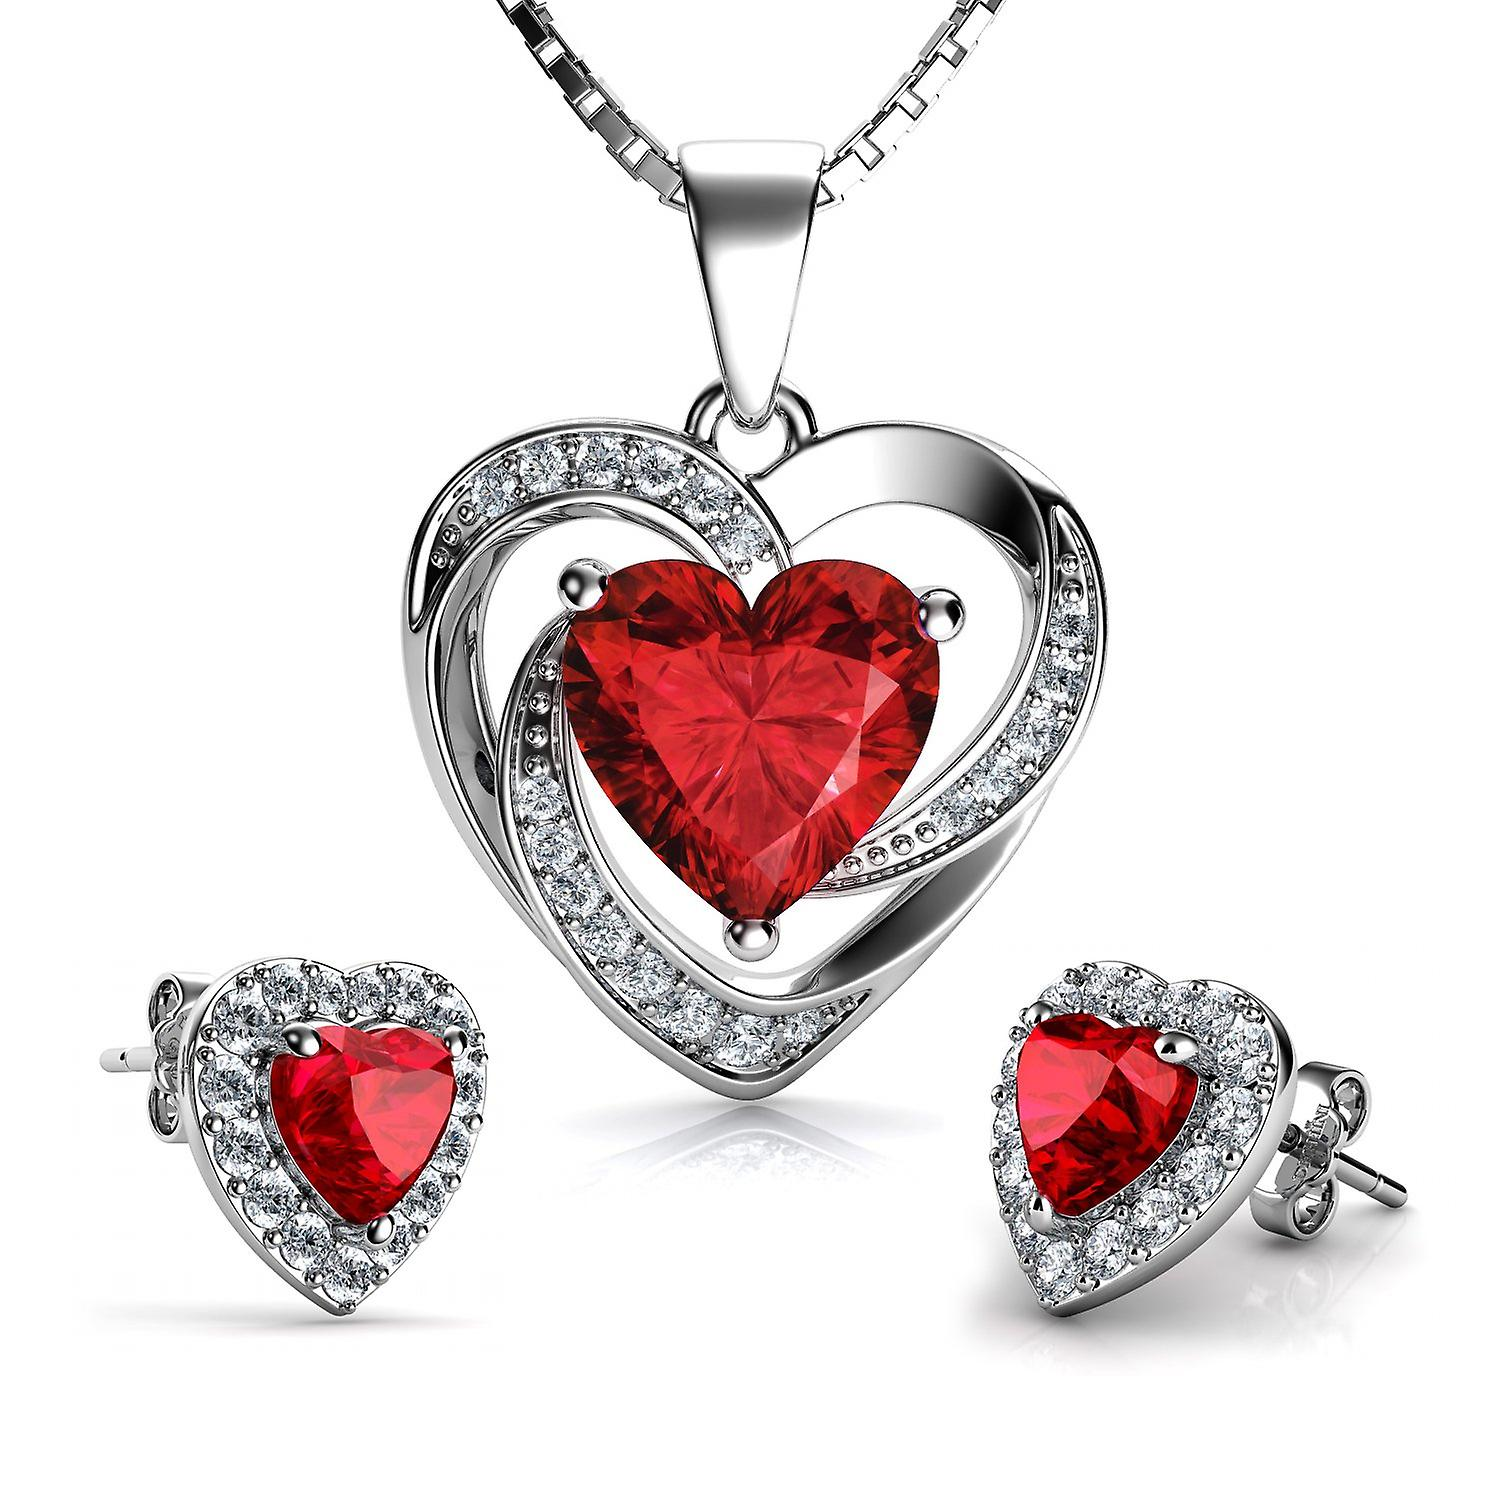 Dephini red heart necklace & heart earrings silver - red jewellery set